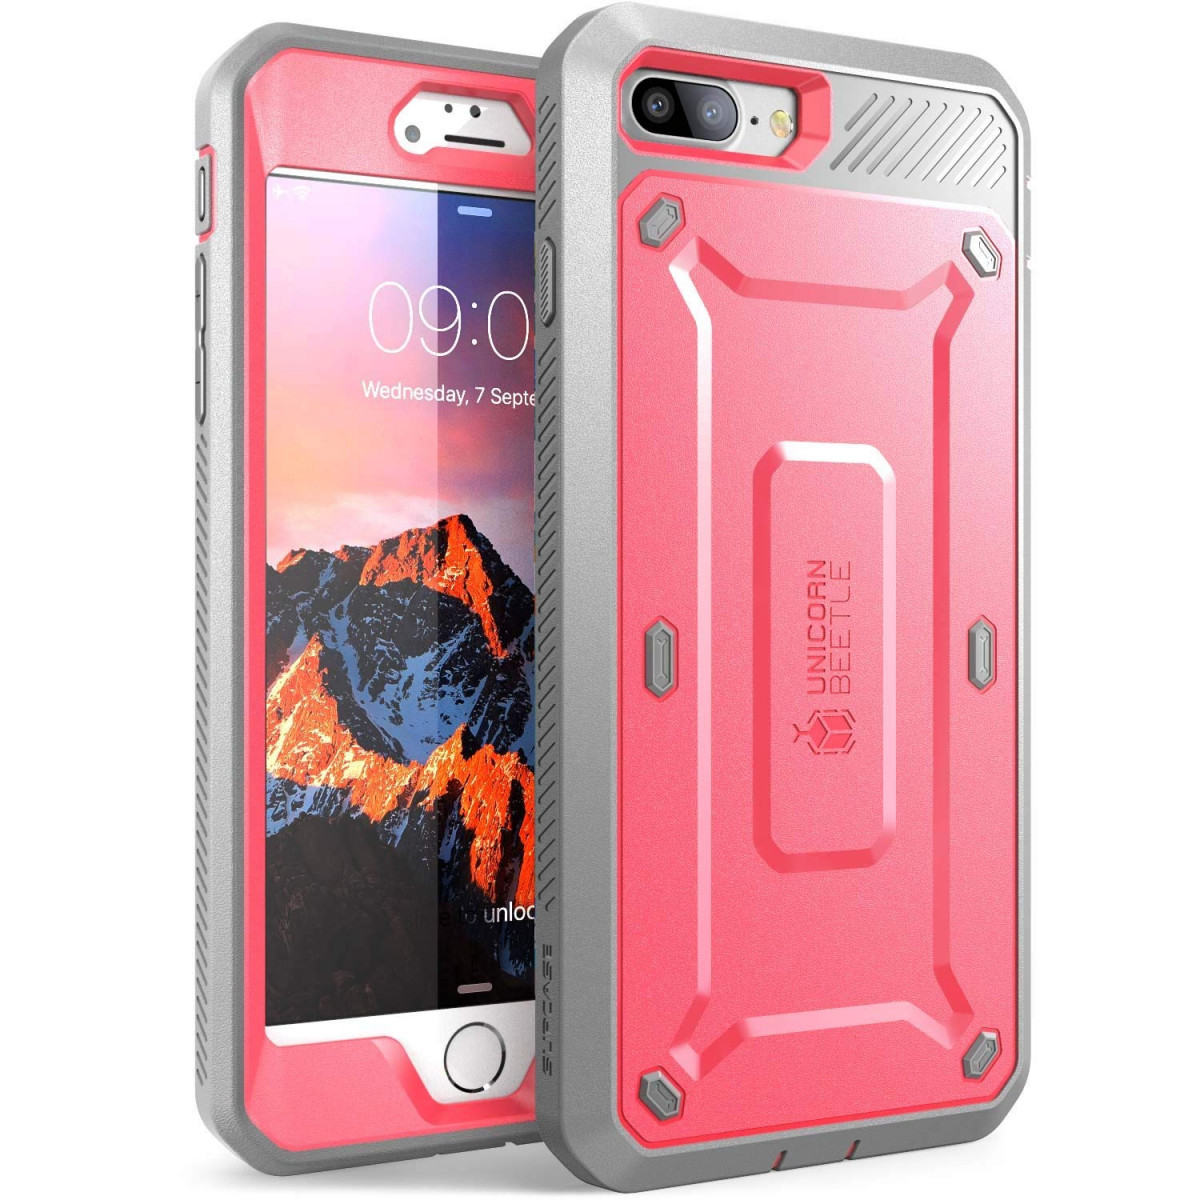 huge selection of 00027 58812 SUPCASE iPhone 7 Plus Case, iPhone 8 Plus Case, Unicorn Beetle Pro Series  Full-body Rugged Holster Case with Built-in Screen Protector for iPhone 7  ...